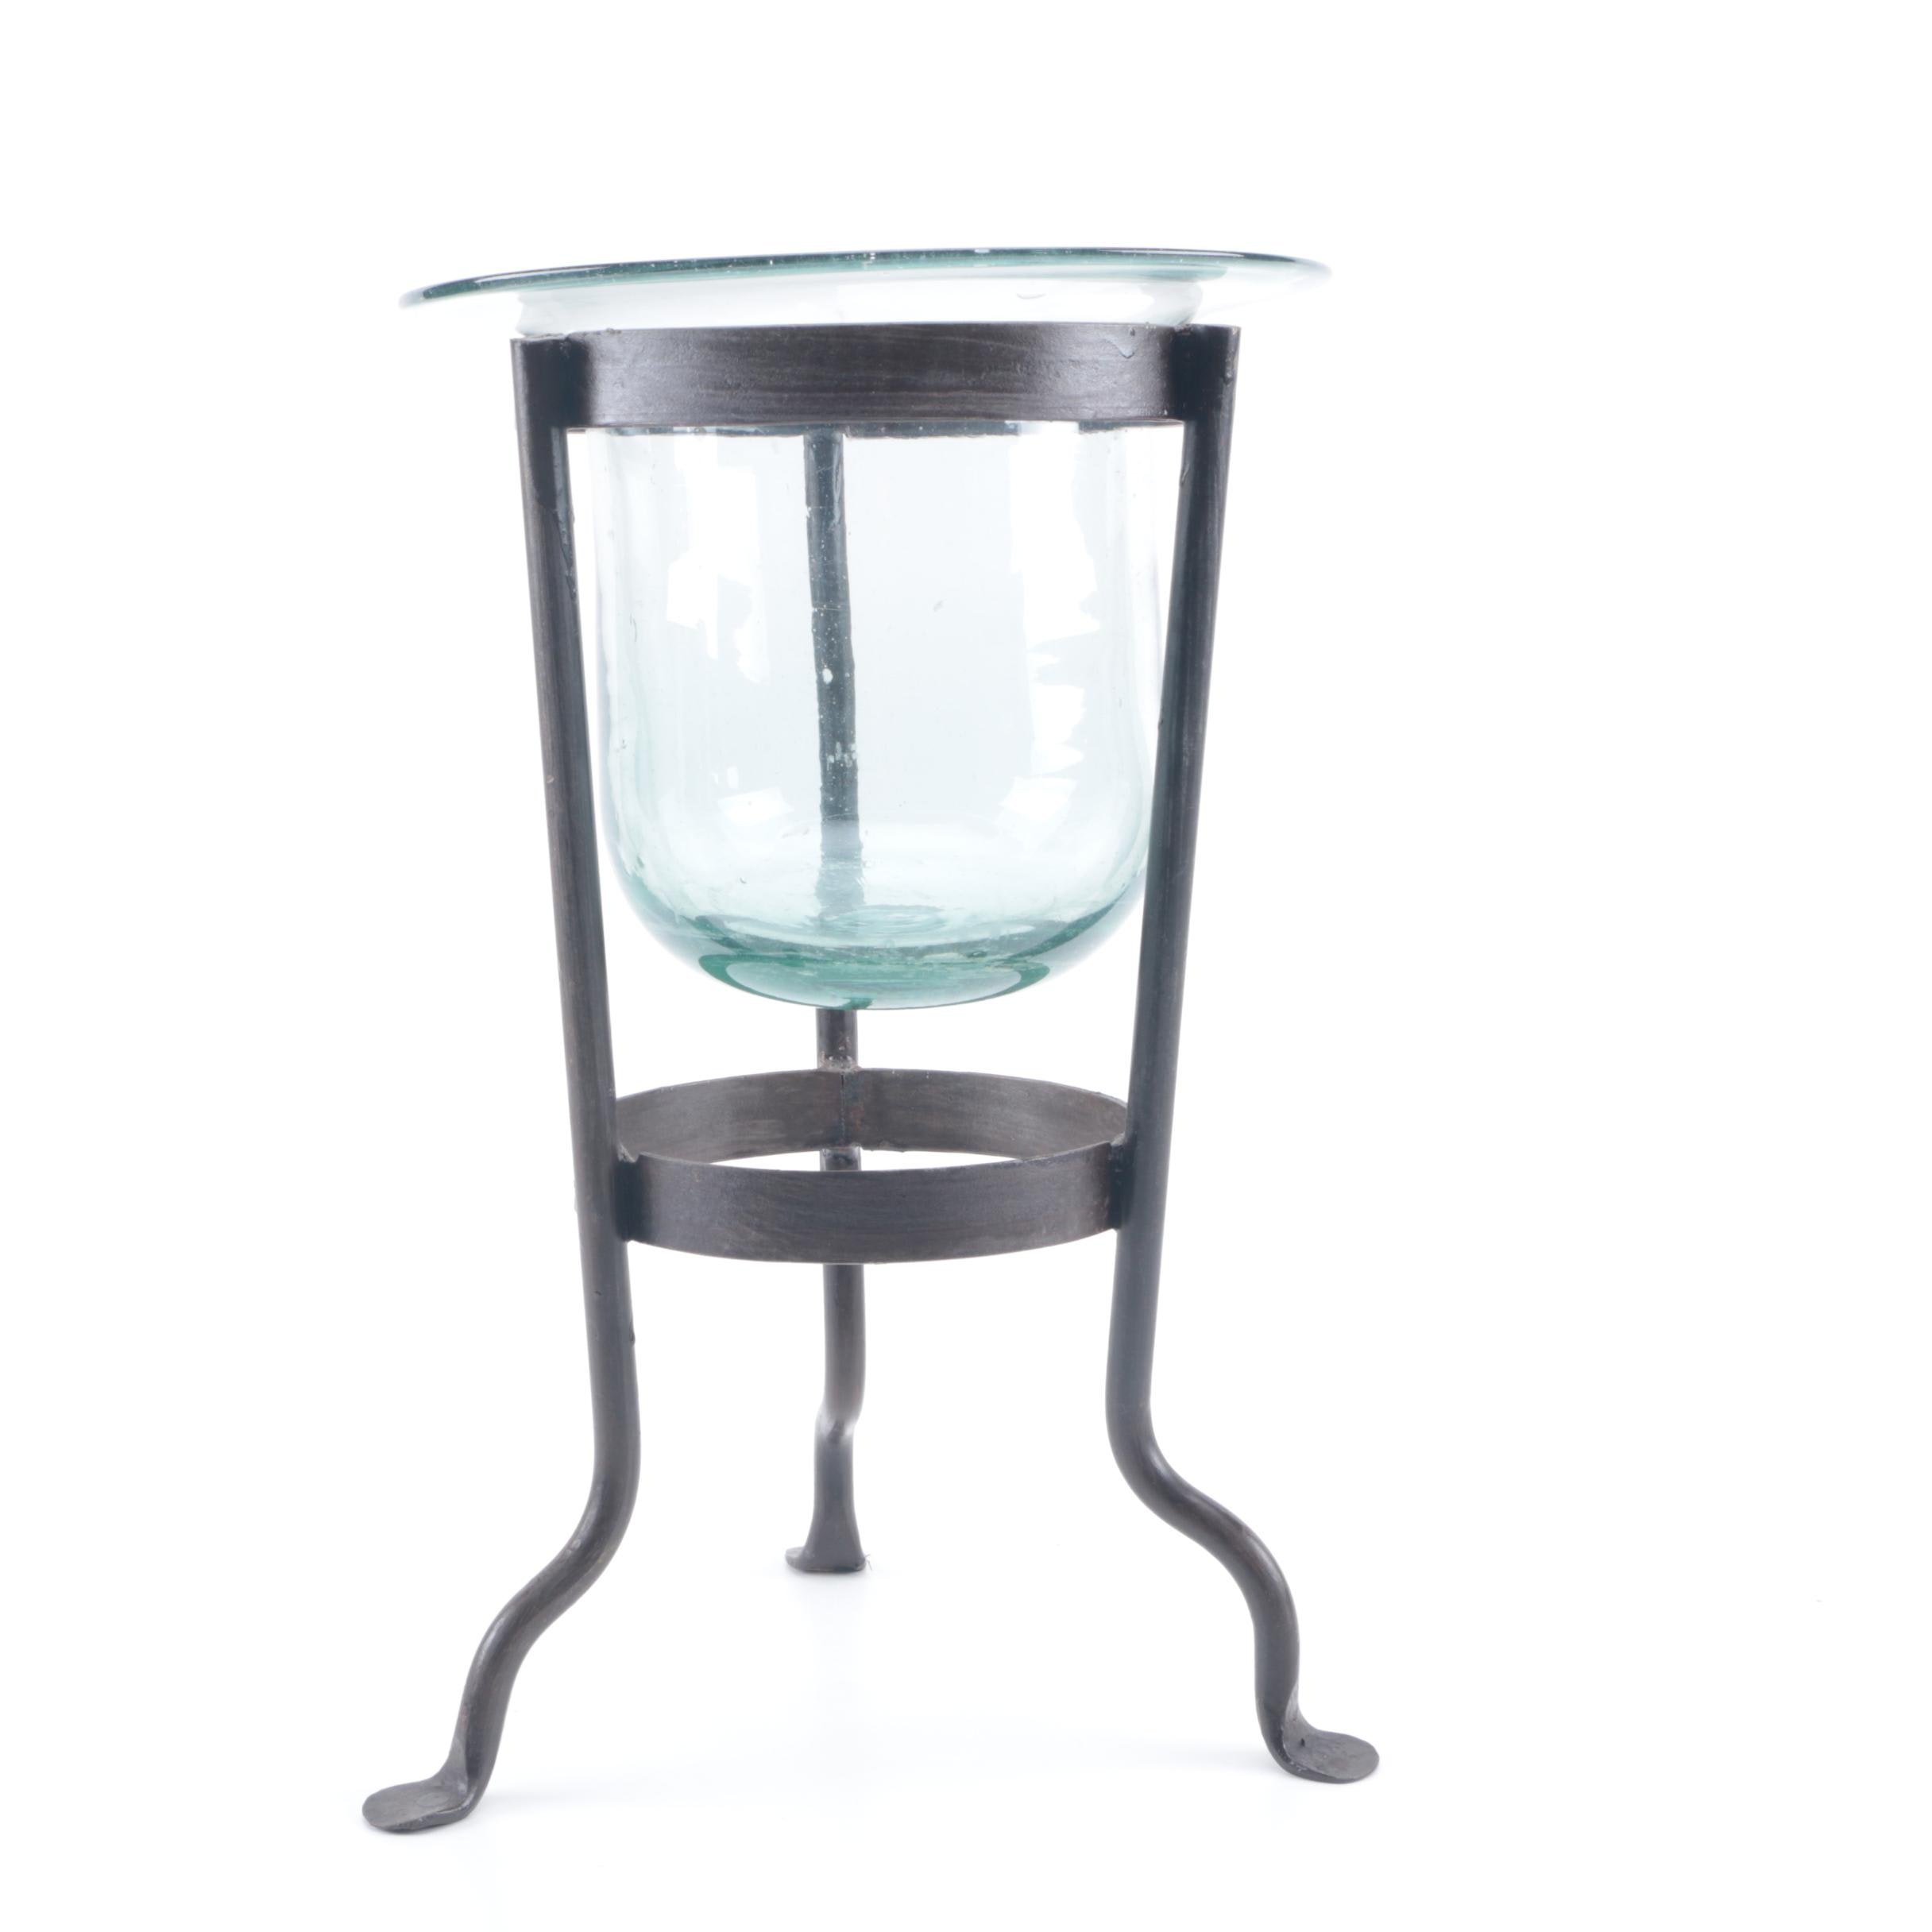 Outdoor Metal and Glass Footed Candle Stand